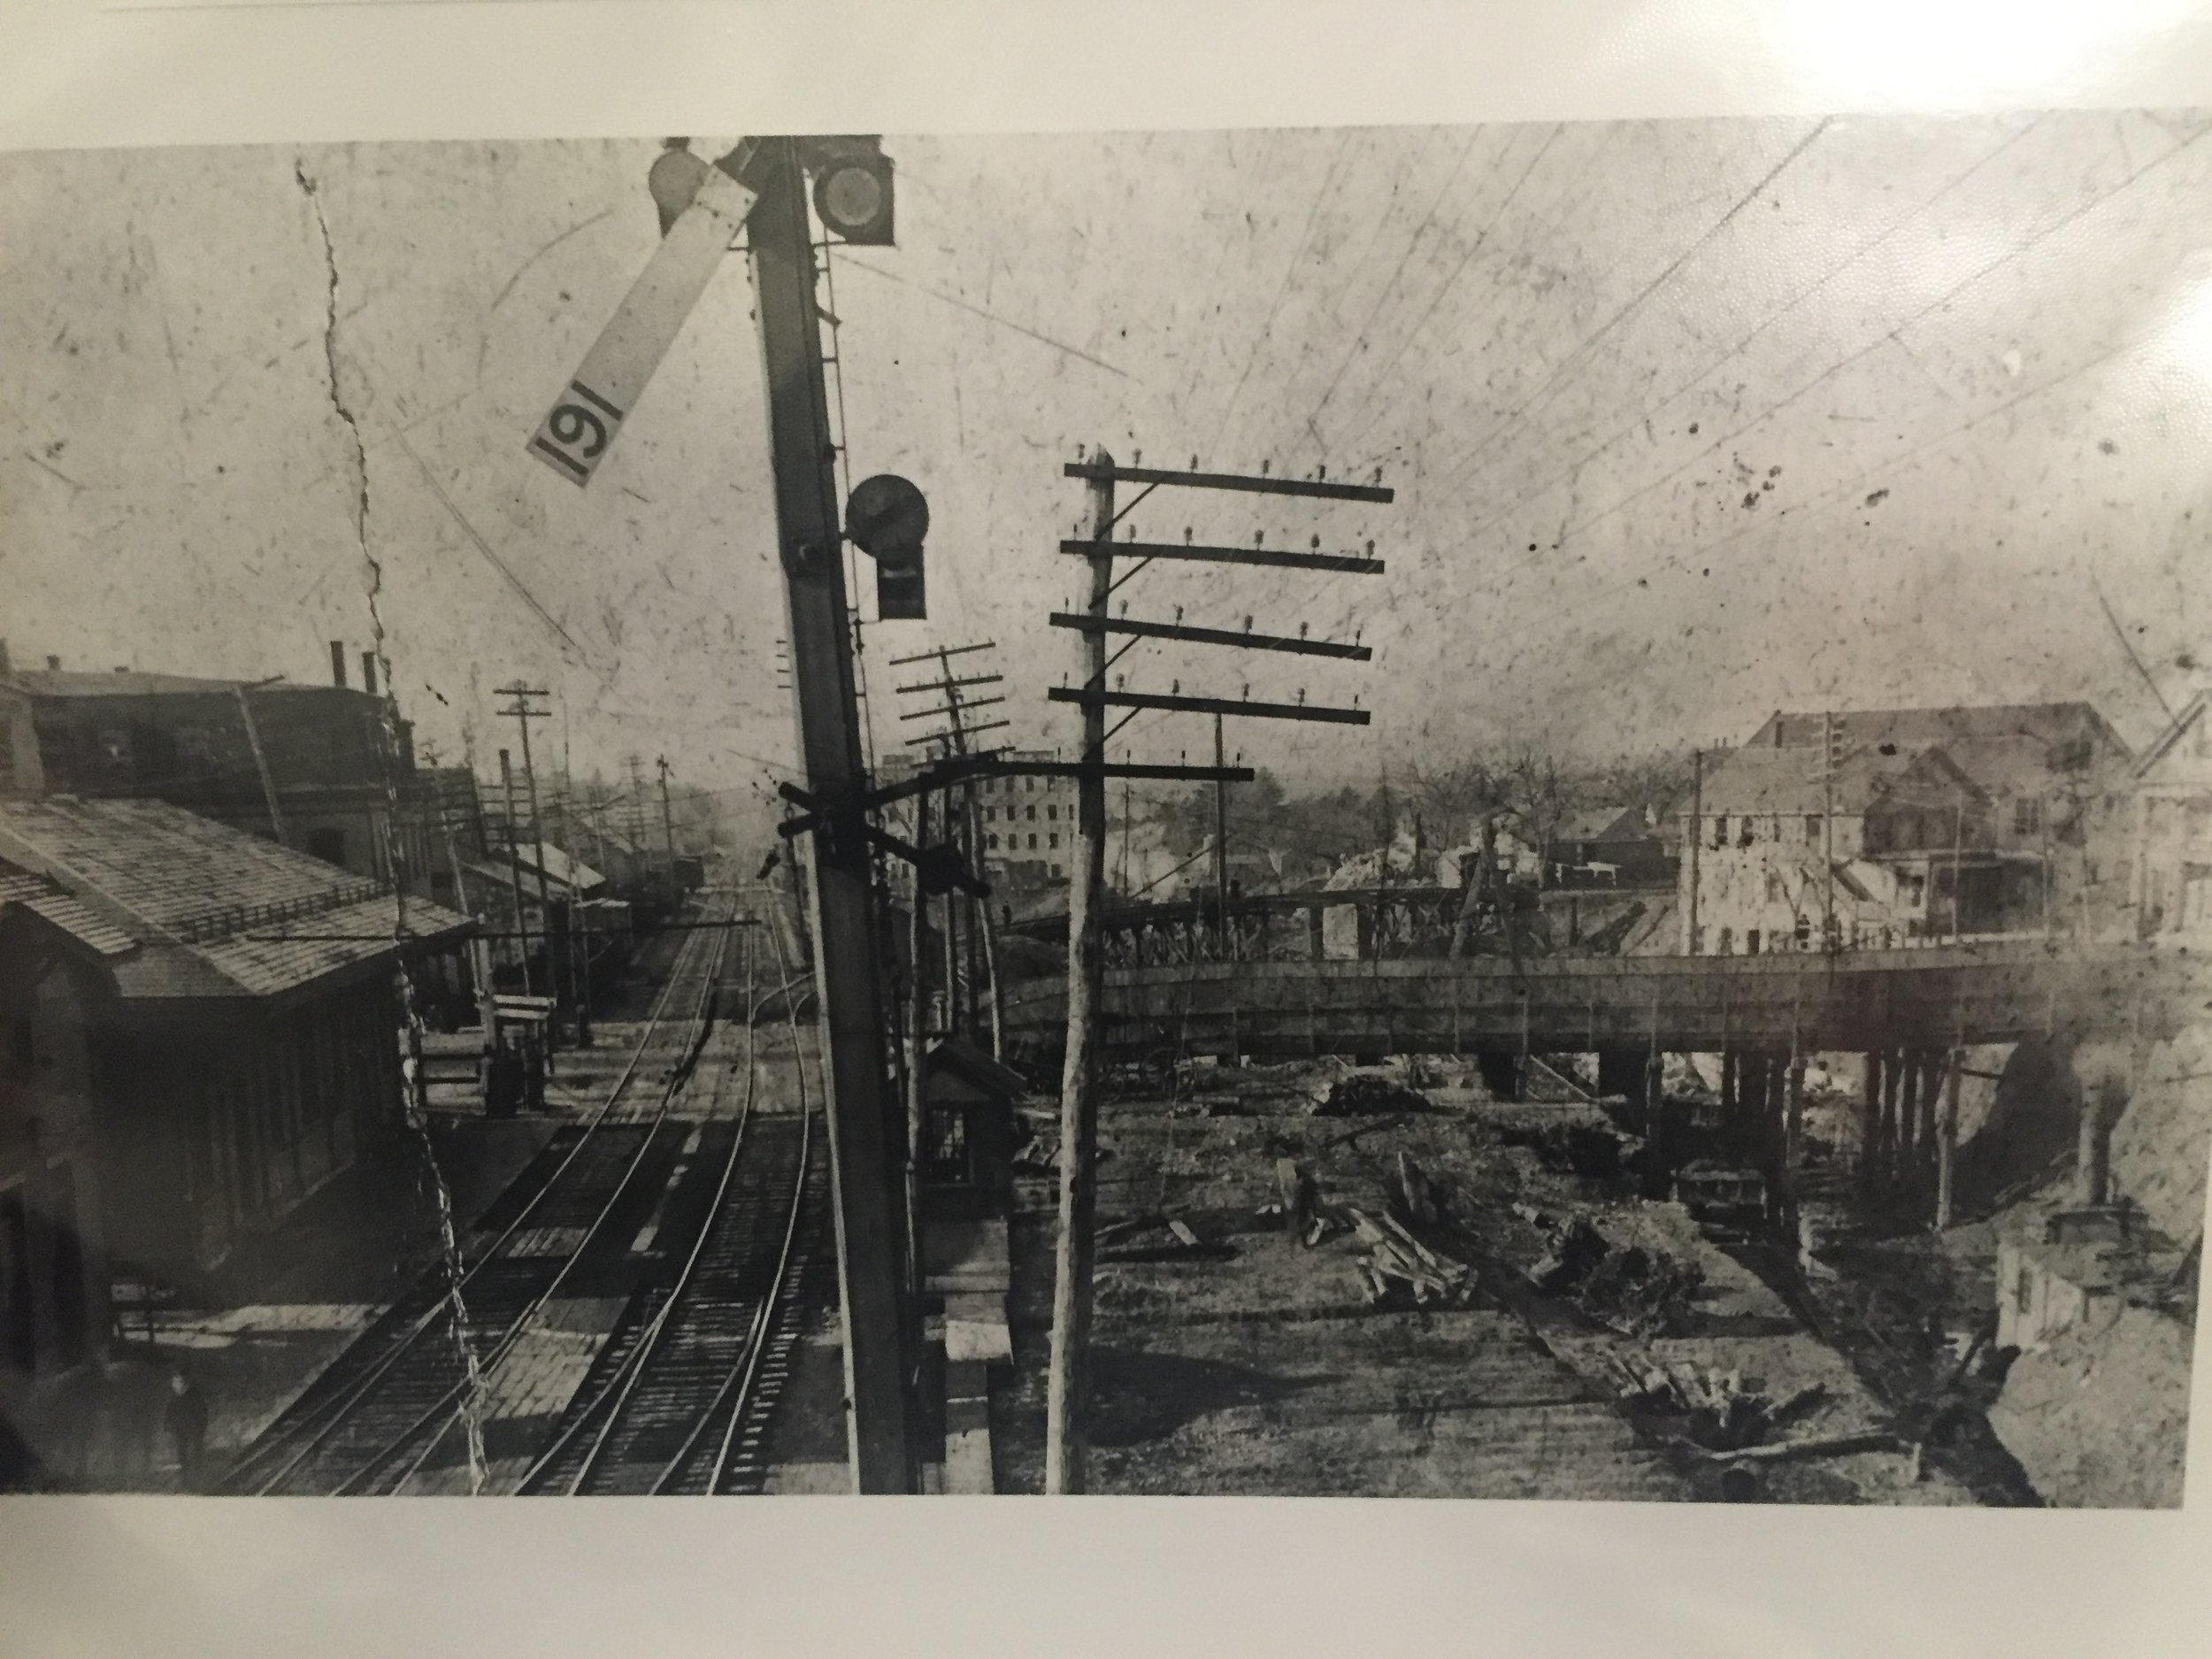 The original (1850s) Natick station building is on the left, and excavations to lower the tracks have begun on the right.